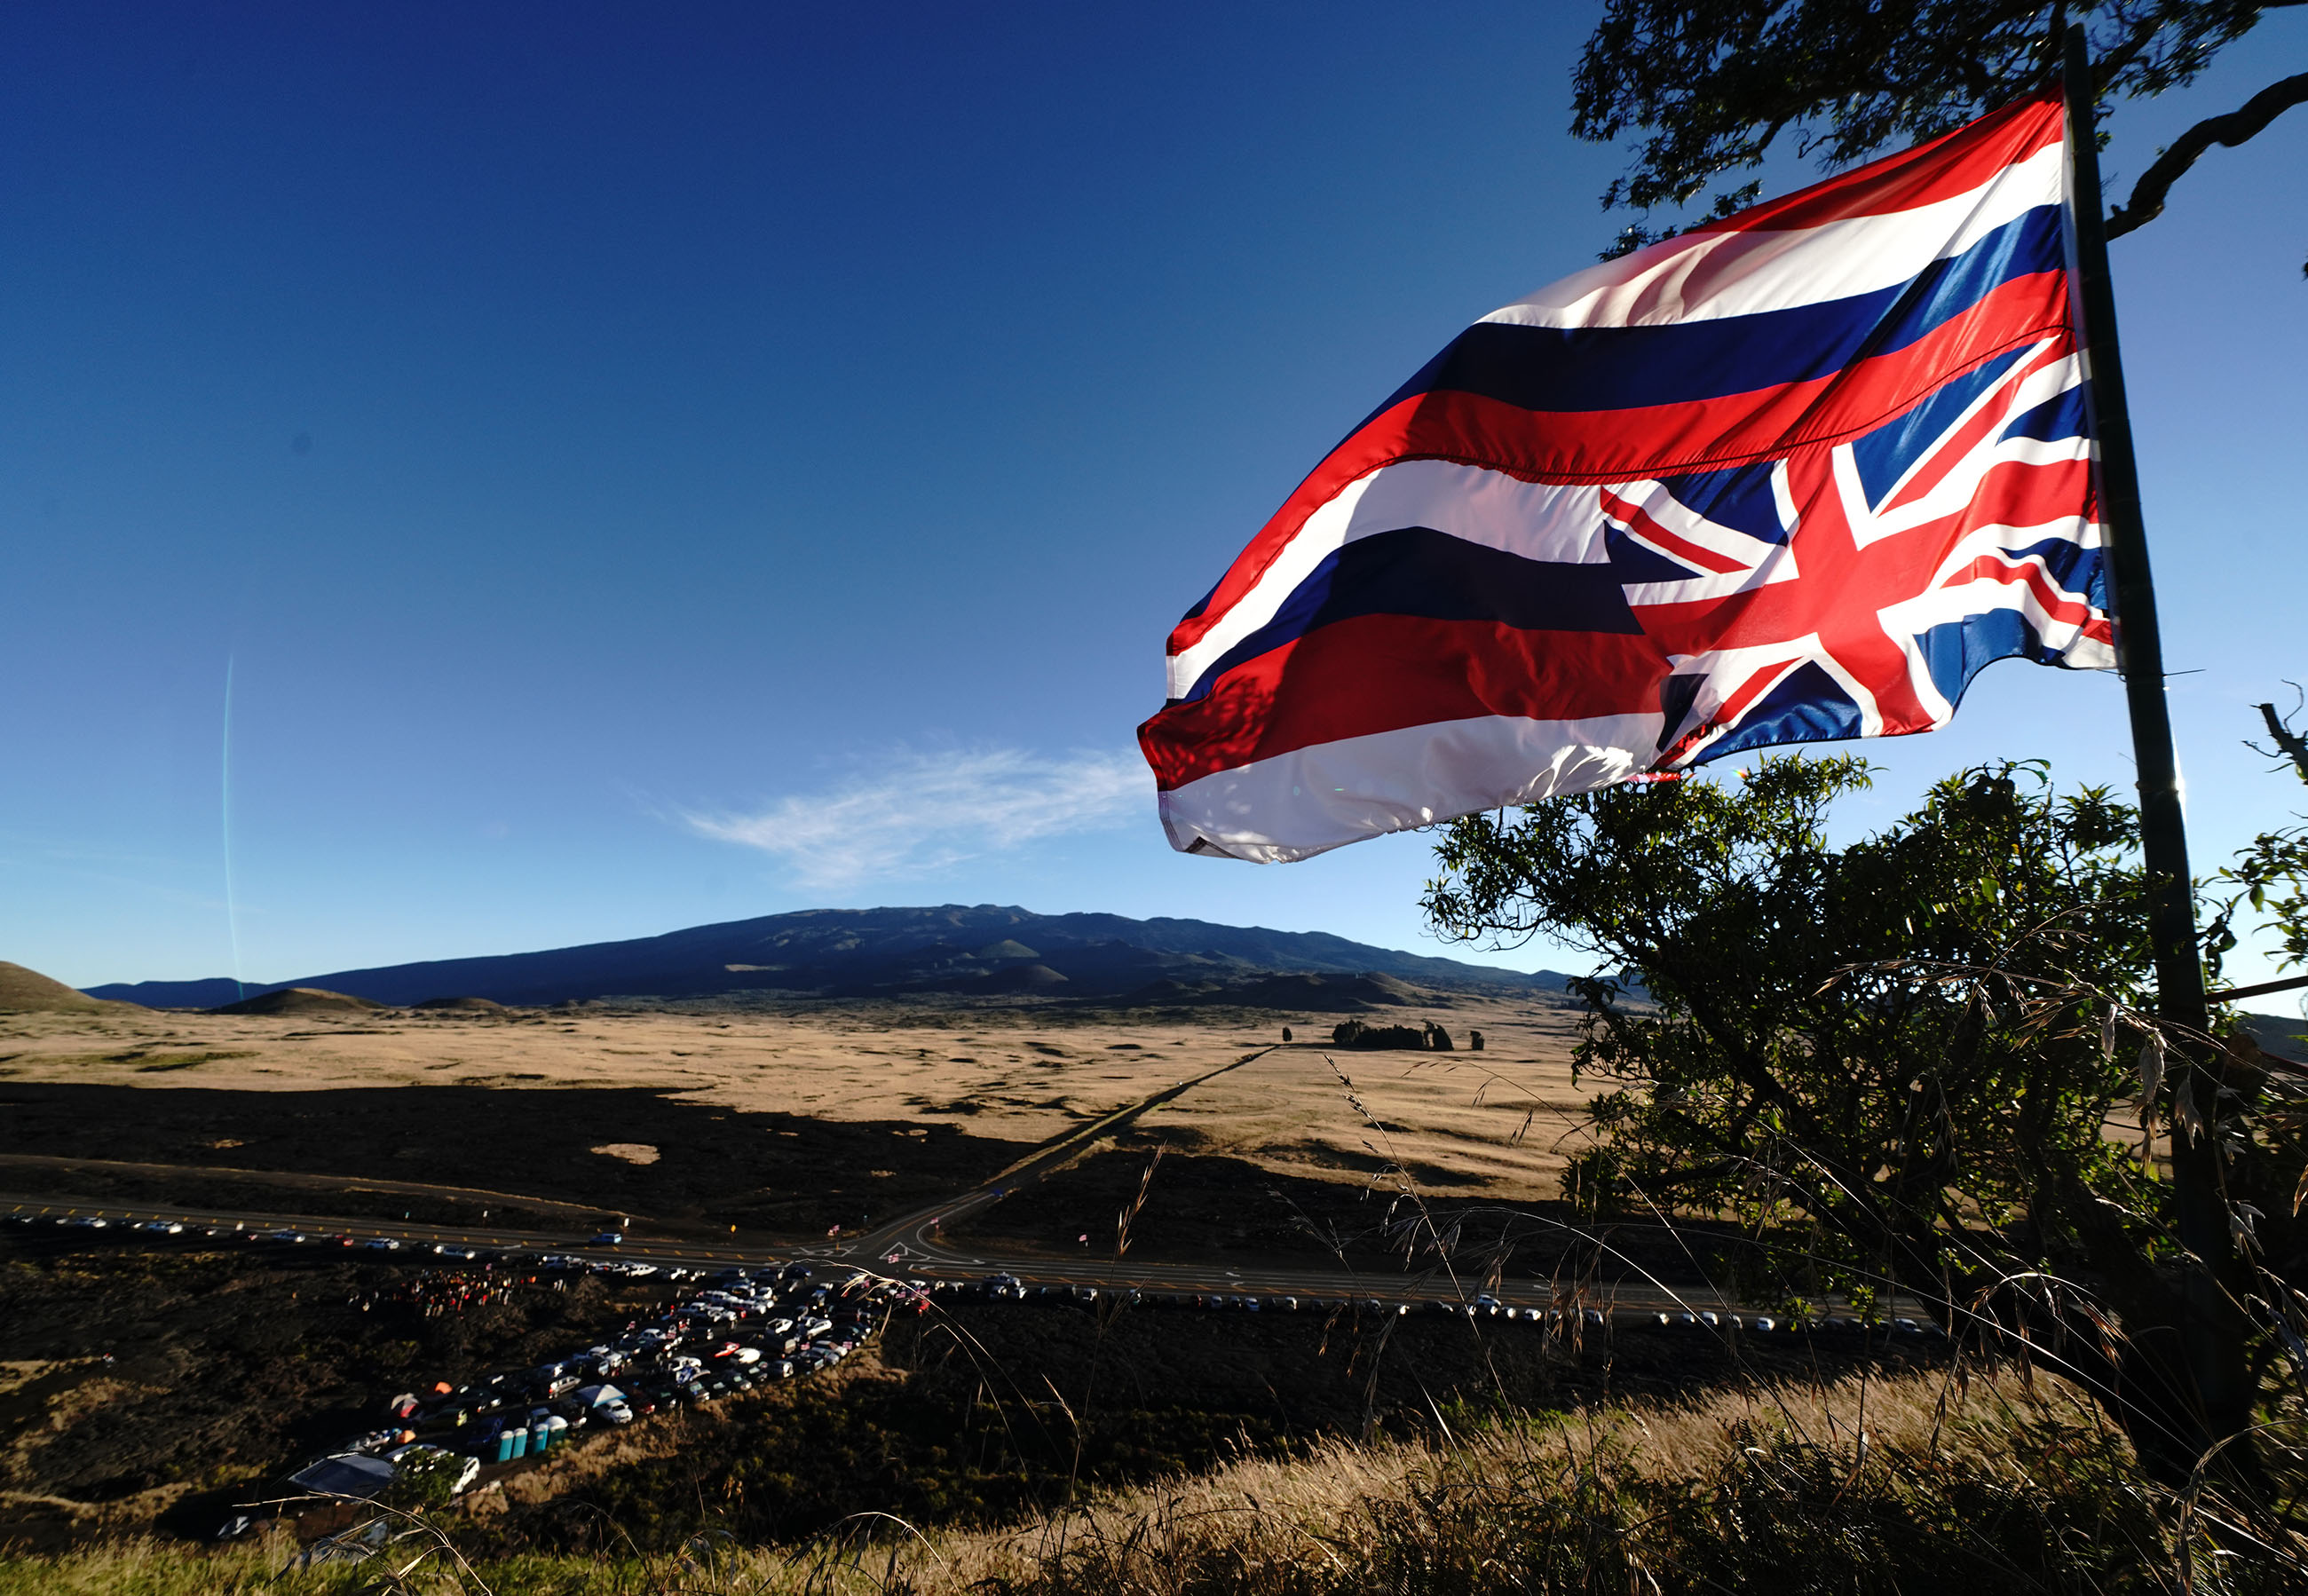 Maunakea Access Road with parked cars and people gathered along Saddle Road.